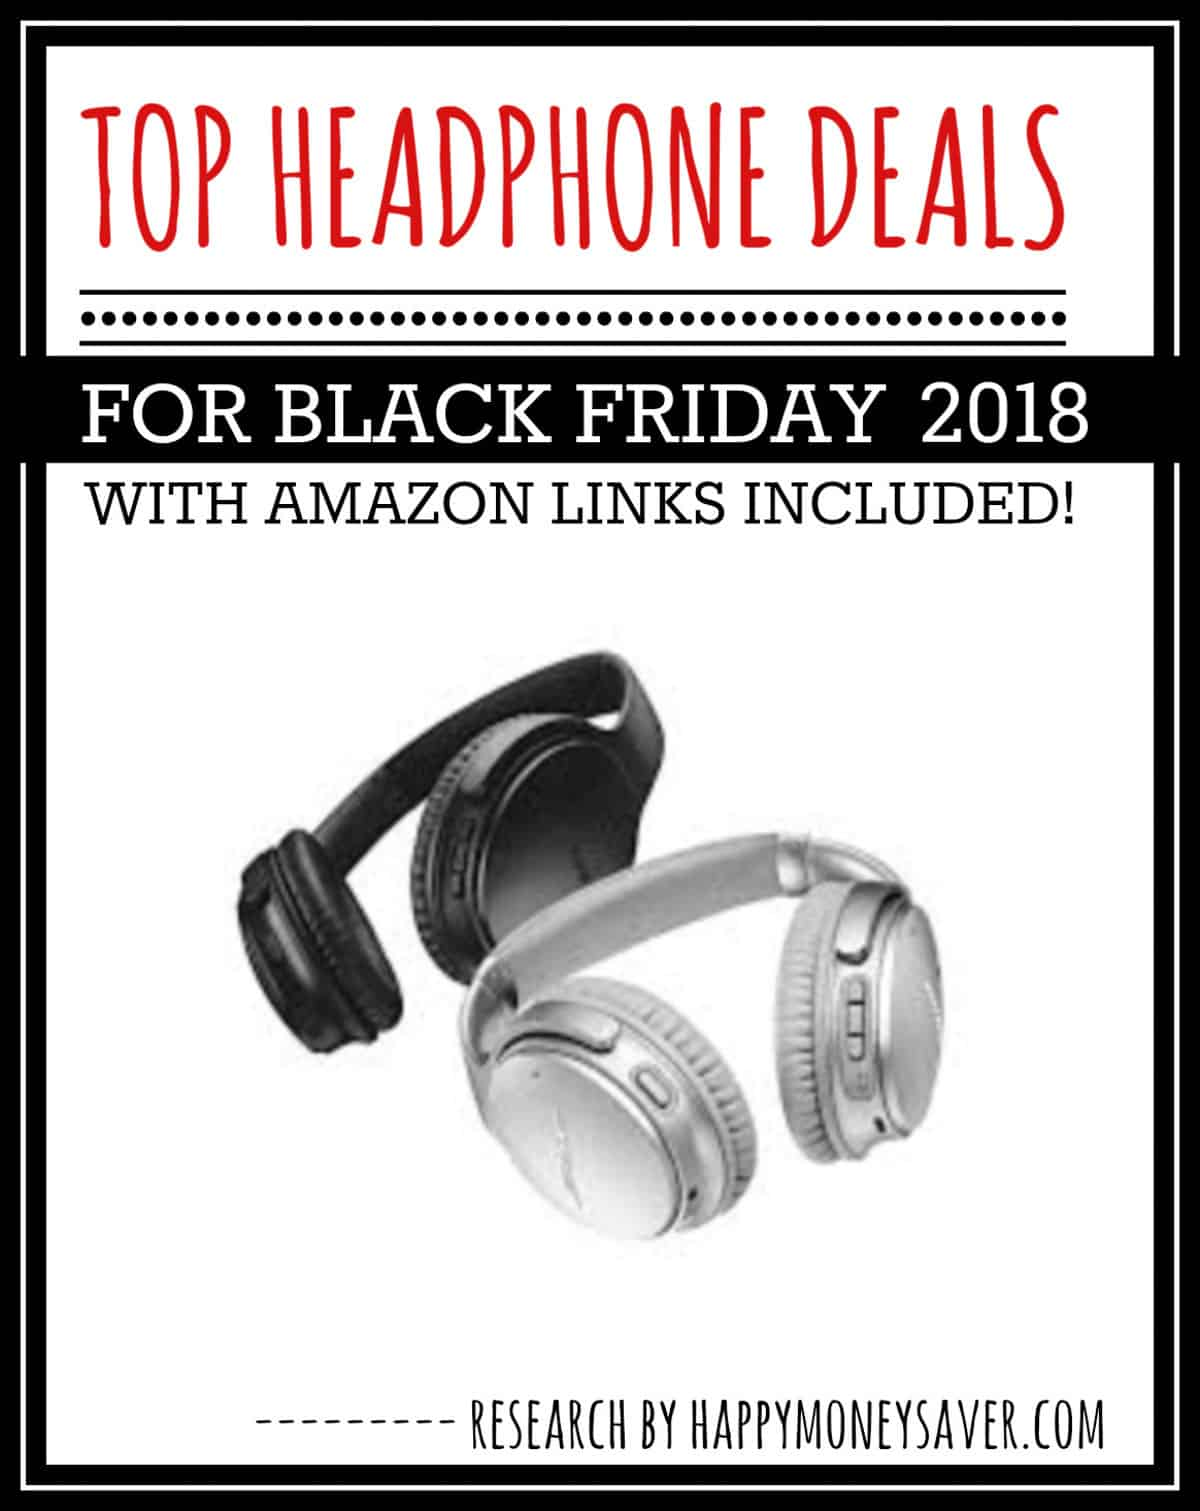 f2165cd6585 HUGE roundup of all the headphone deals for Black Friday 2018! Bluetooth  headphones, beats